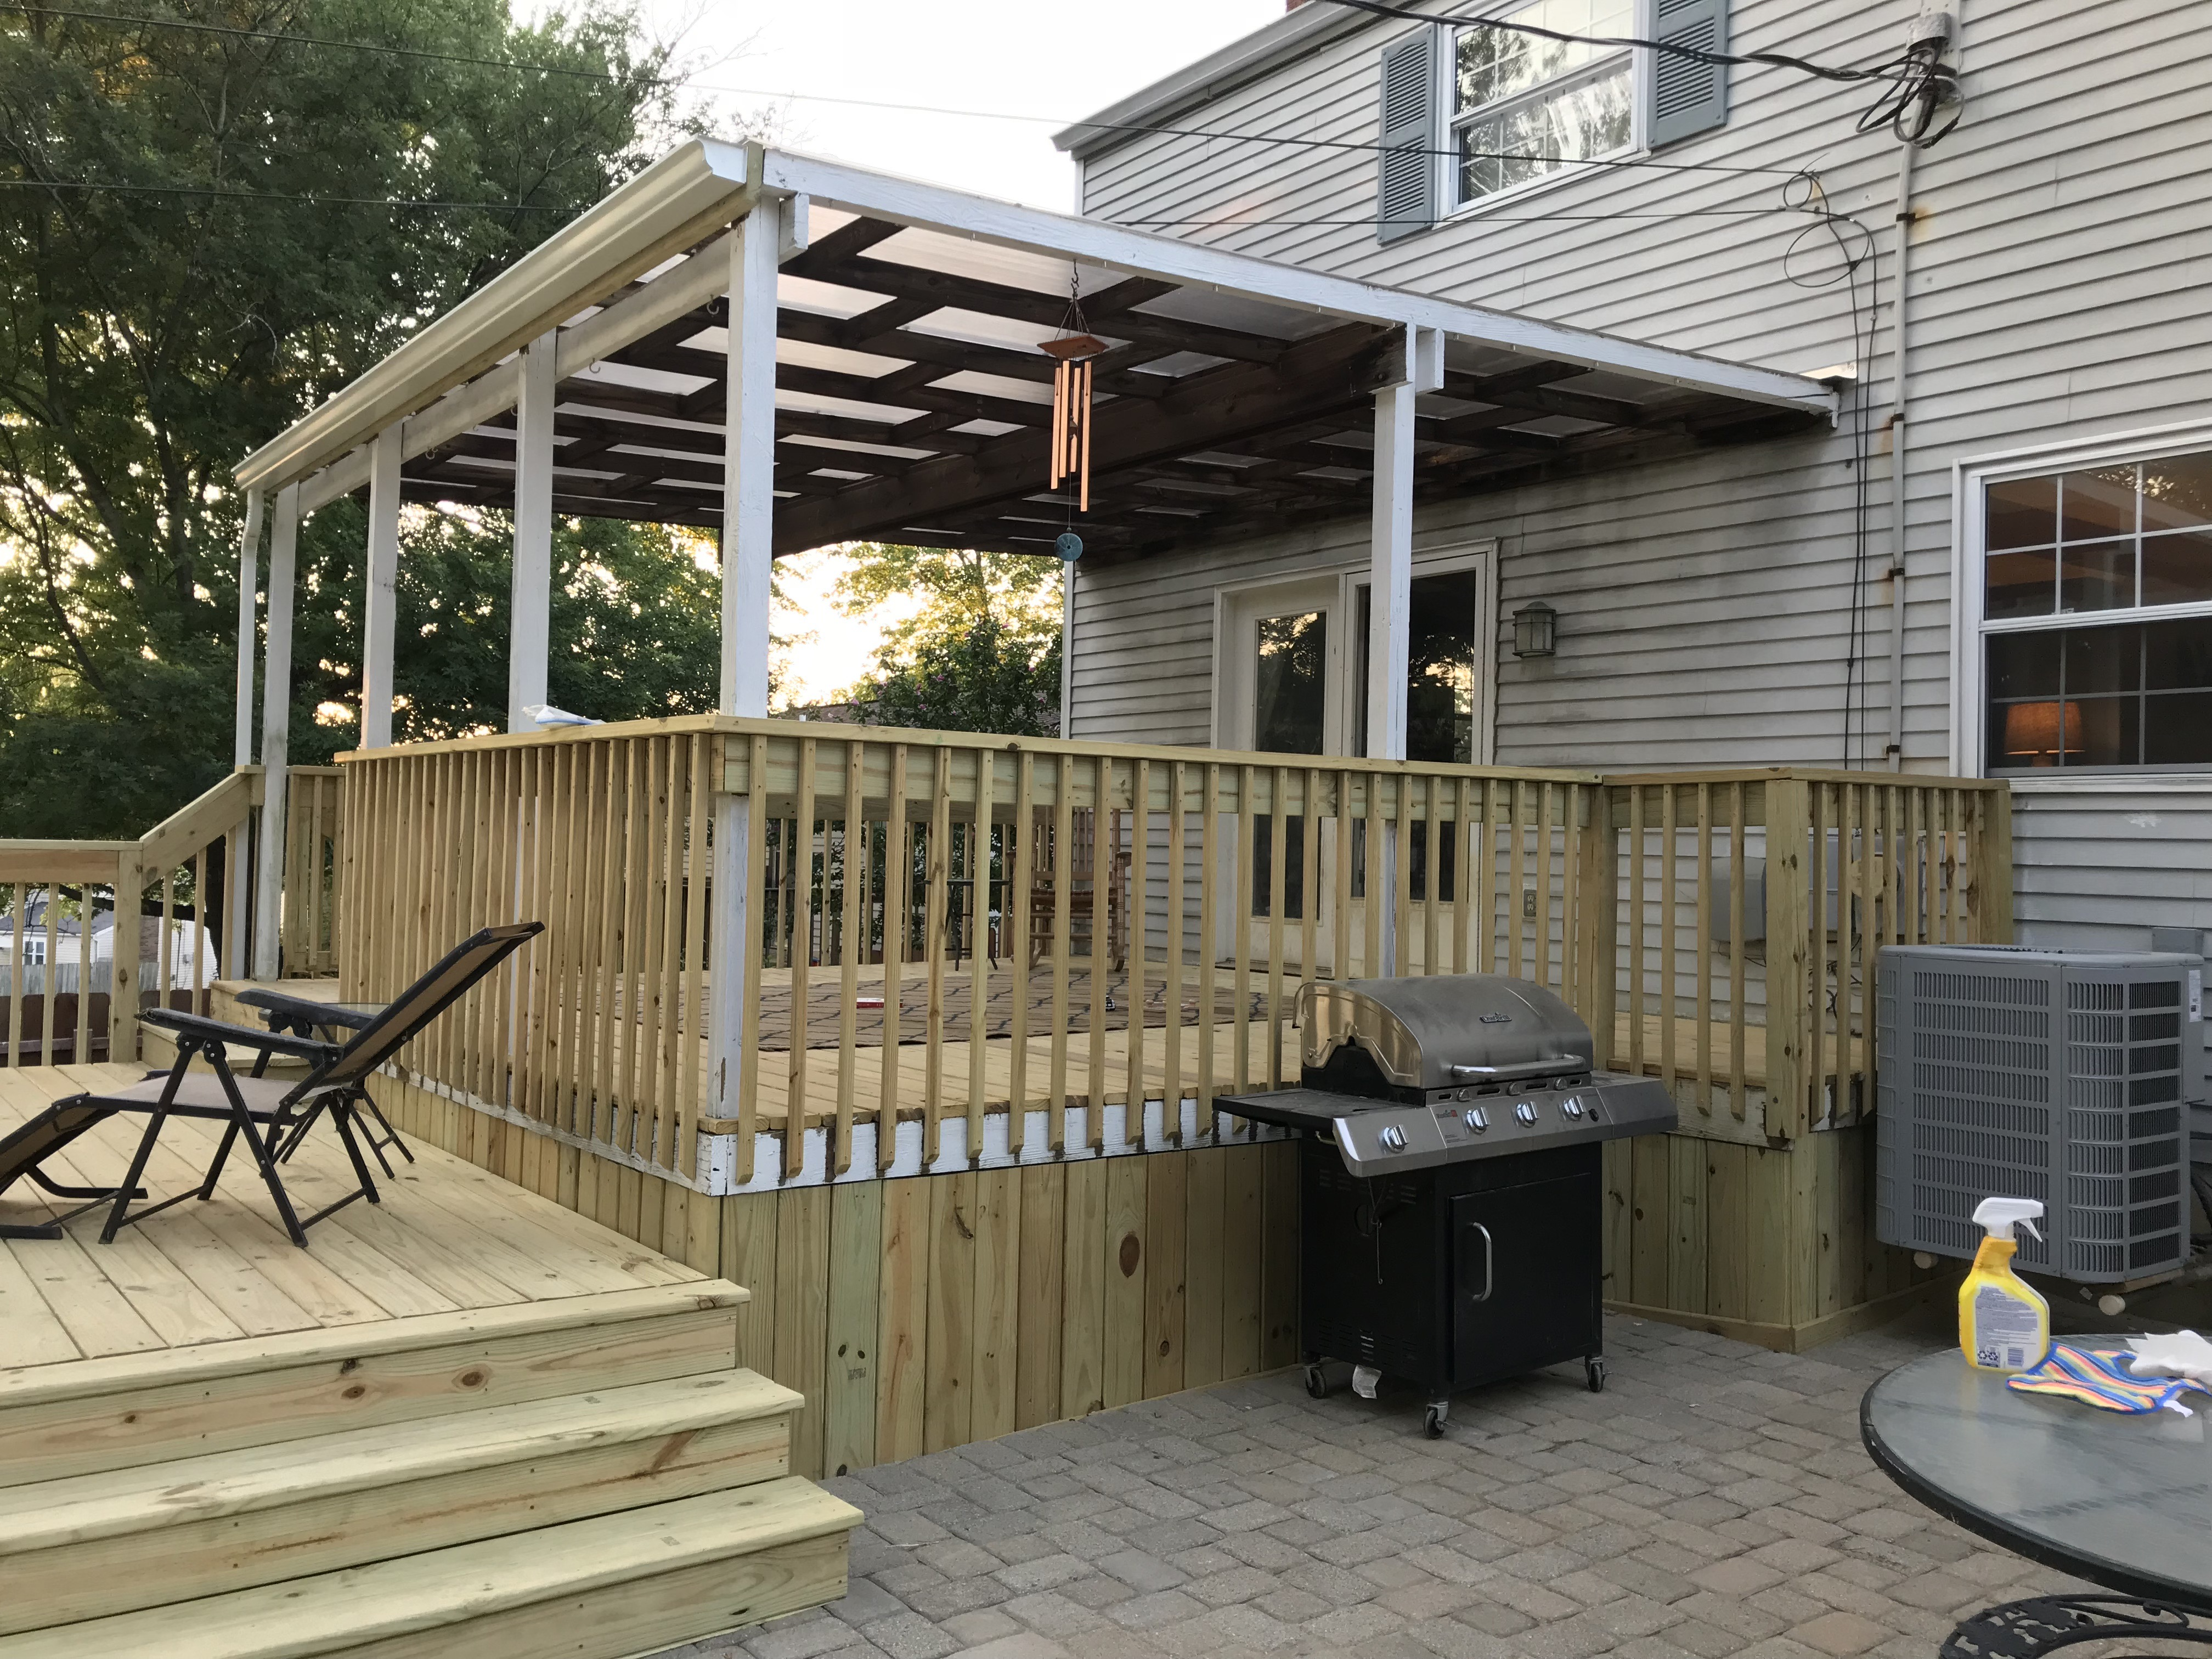 Polycarbonate Roof Reburb Existing Deck Amp Patio Cover